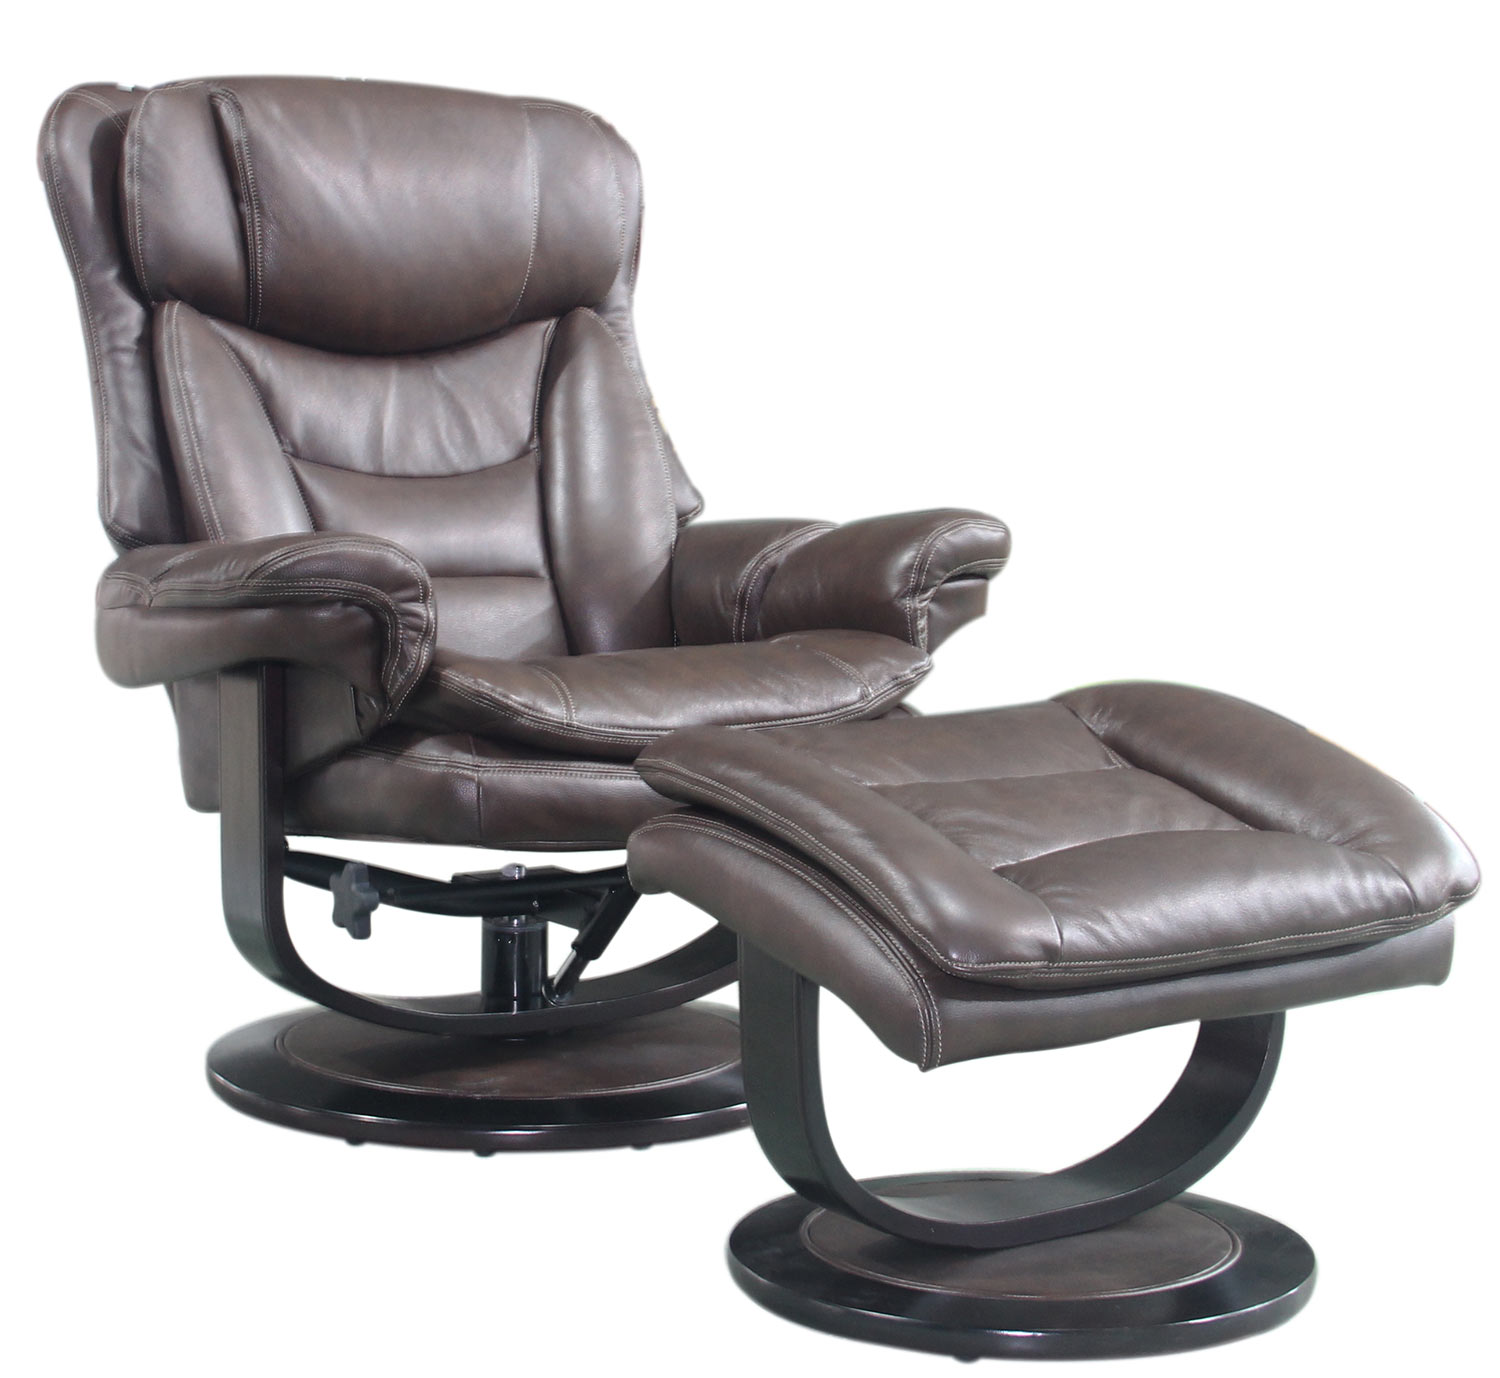 Barcalounger Roscoe Pedestal Recliner Chair and Ottoman - Chelsea Chocolate/Leather Match